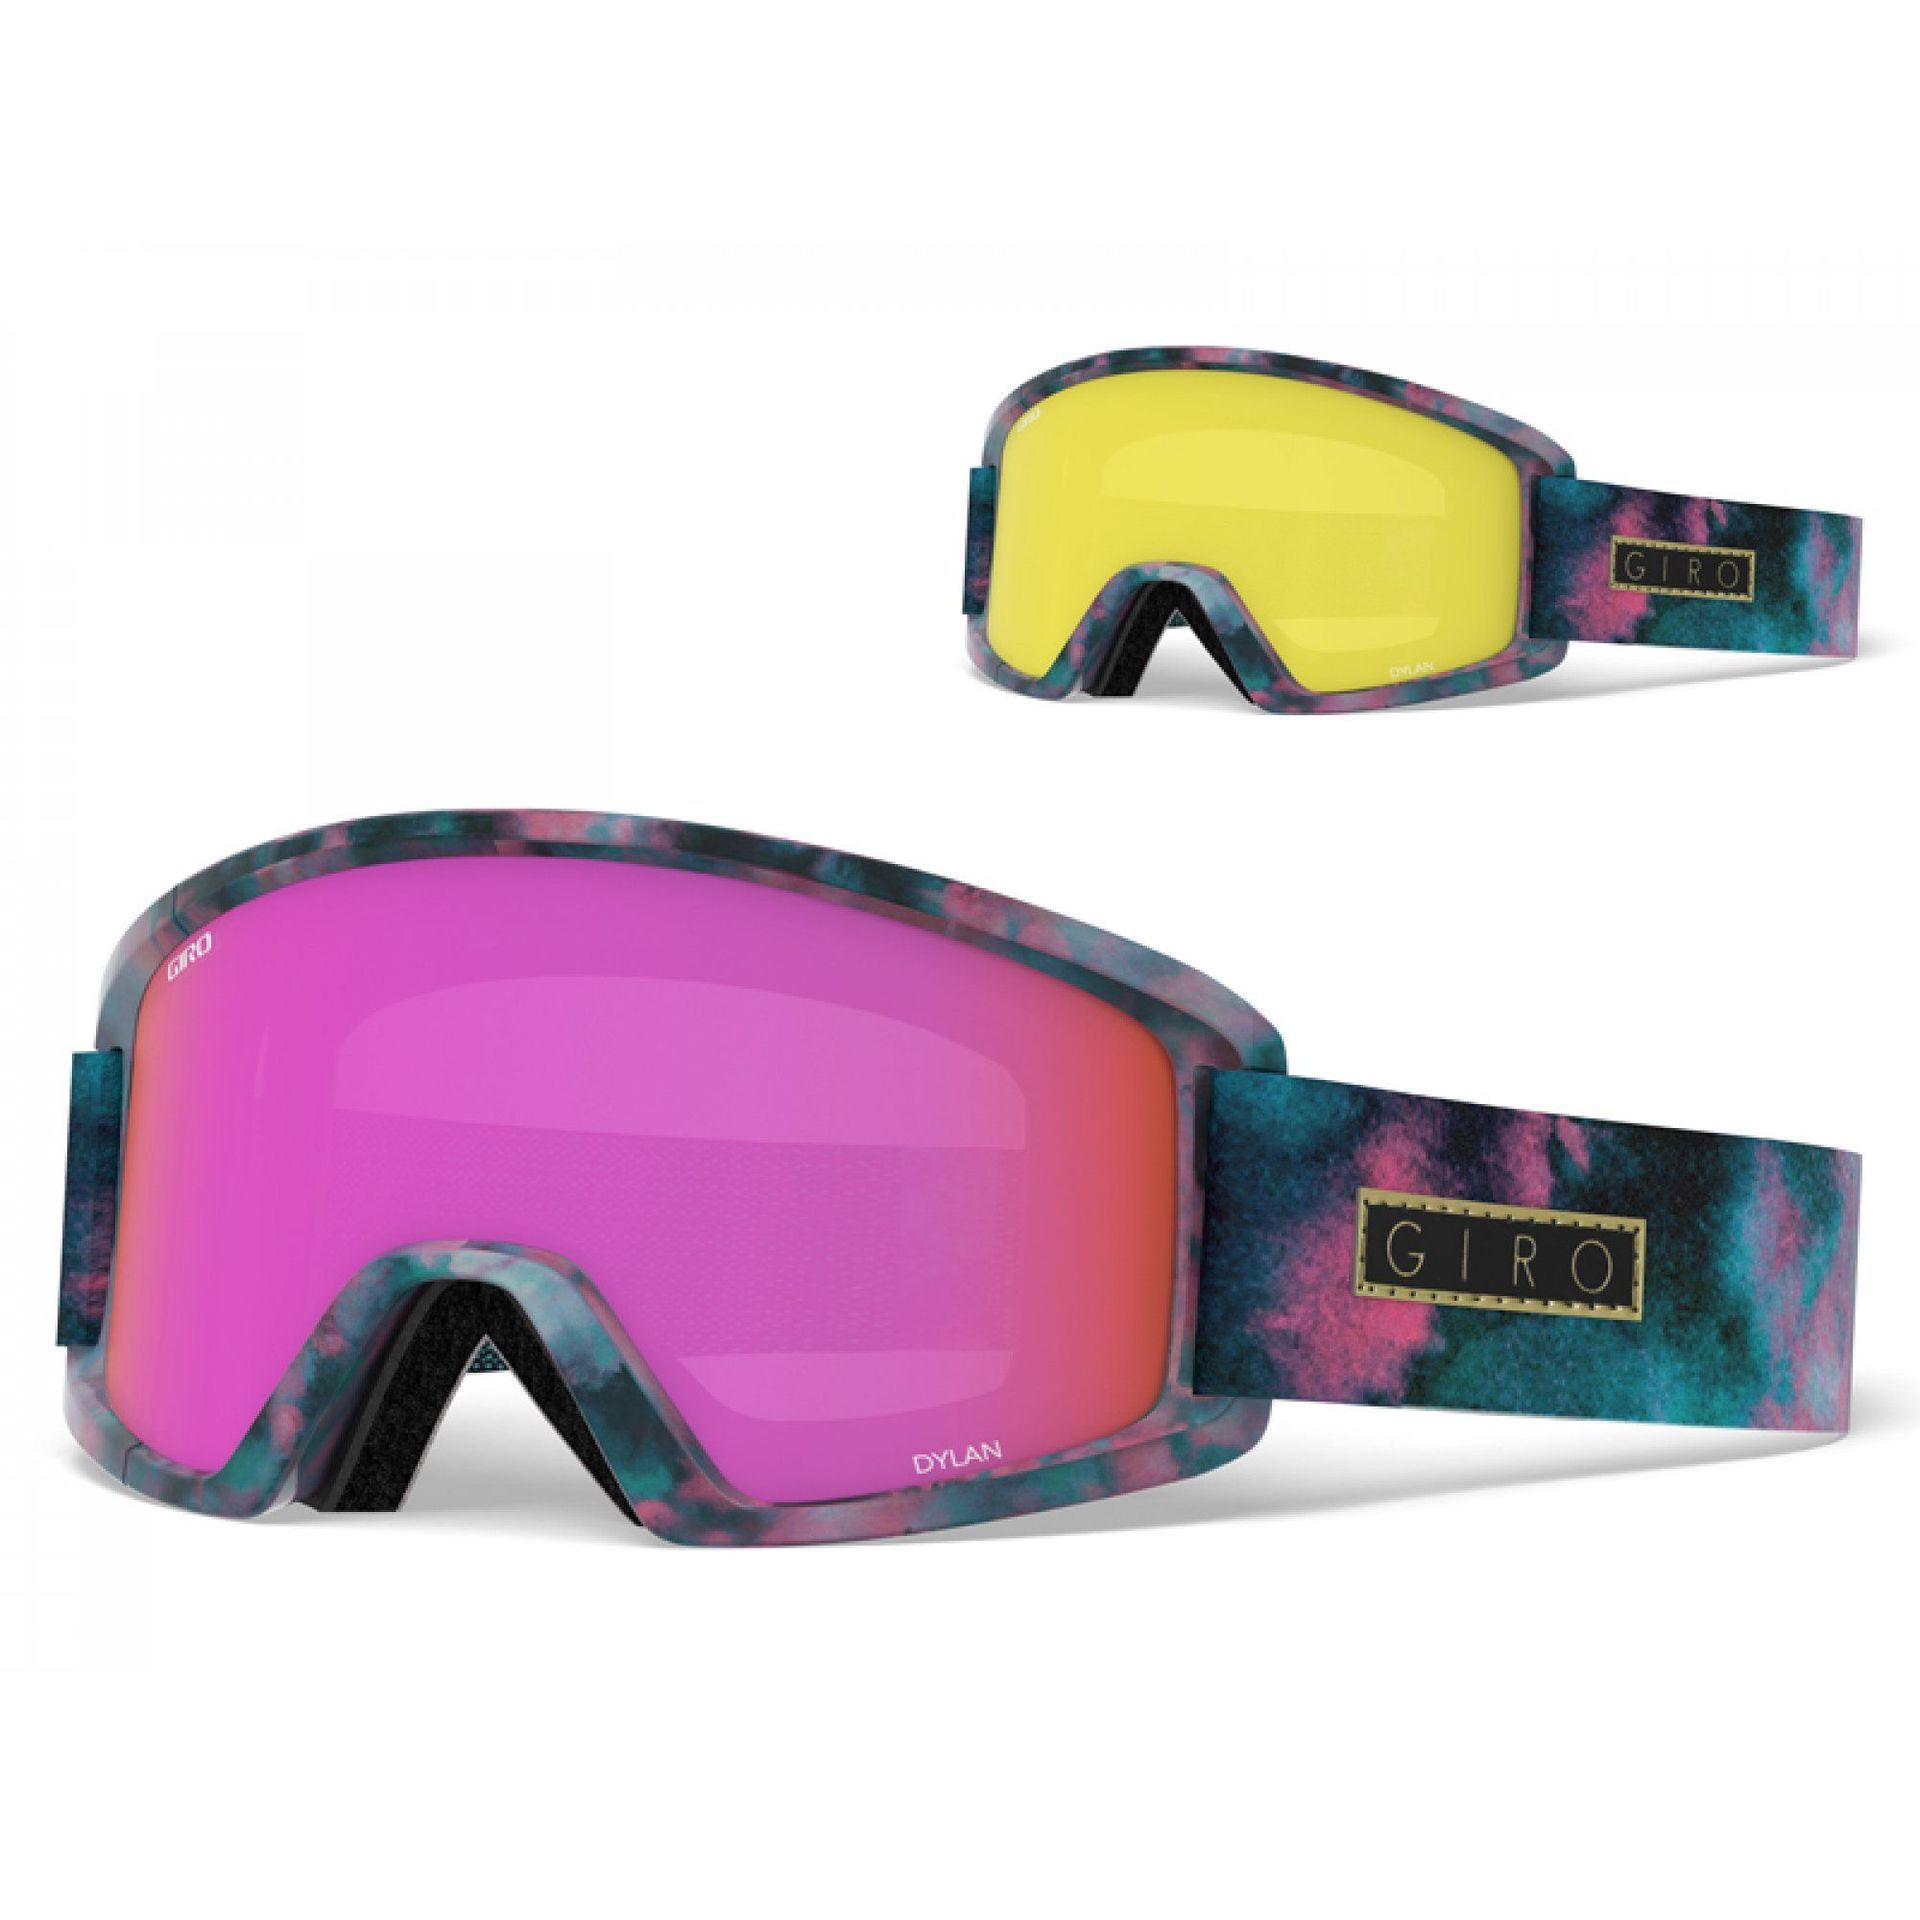 GOGLE GIRO DYLAN BLEACHED OUT|AMBER PINK+YELLOW